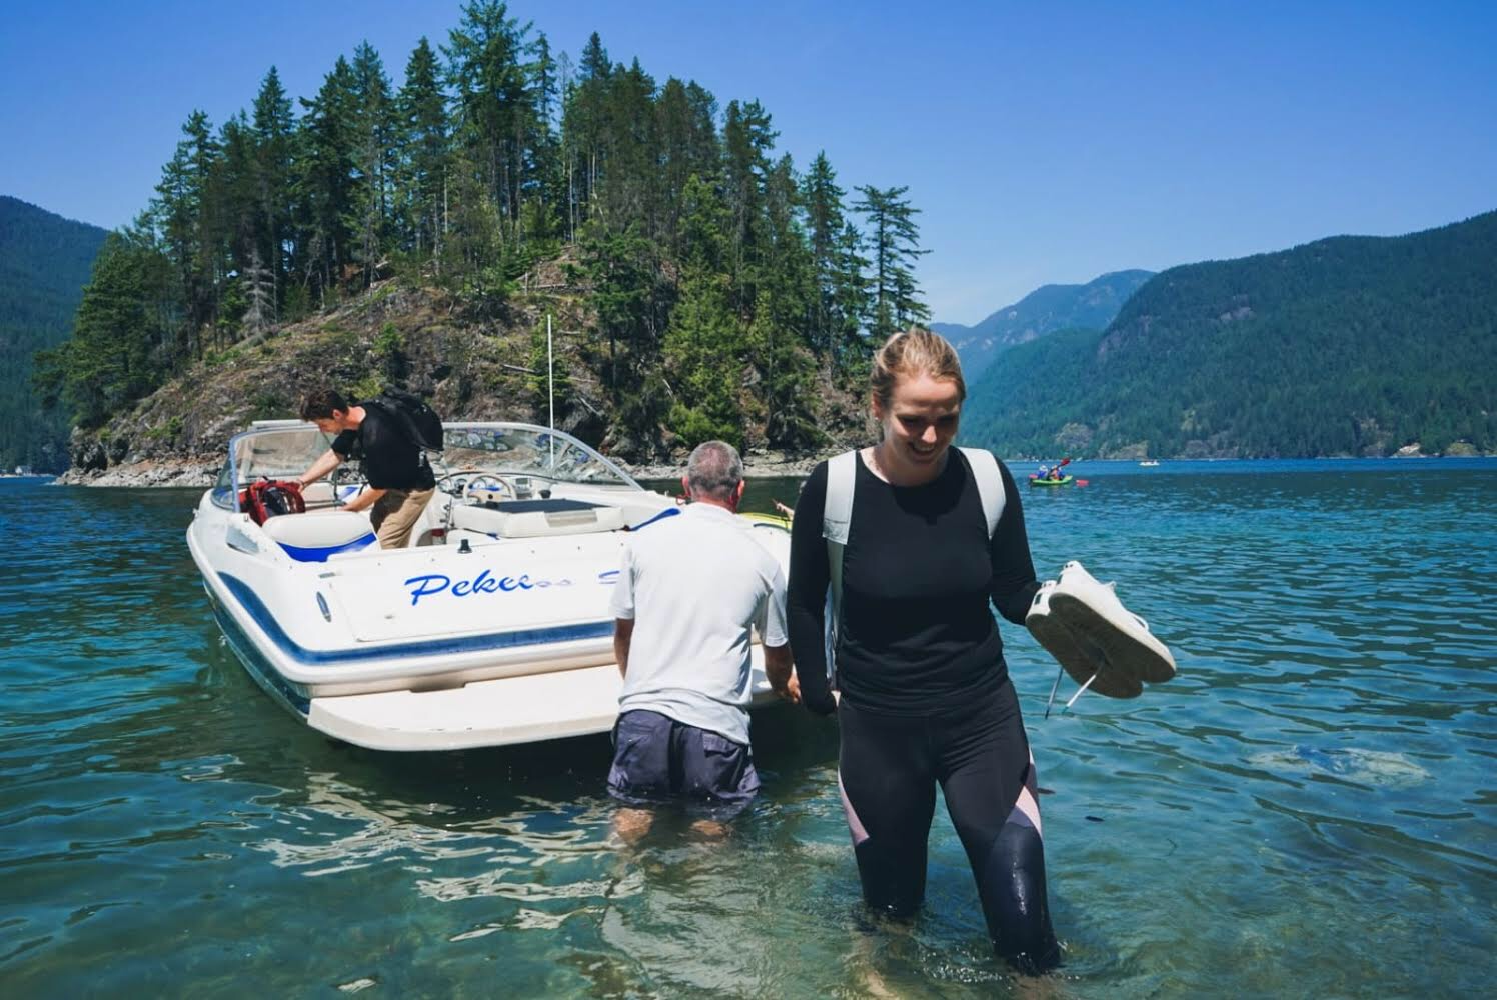 Have Indian Arm Boat Charters taxi you and your gear to Twin Islands, a free campground 5.5 km from Deep Cove.